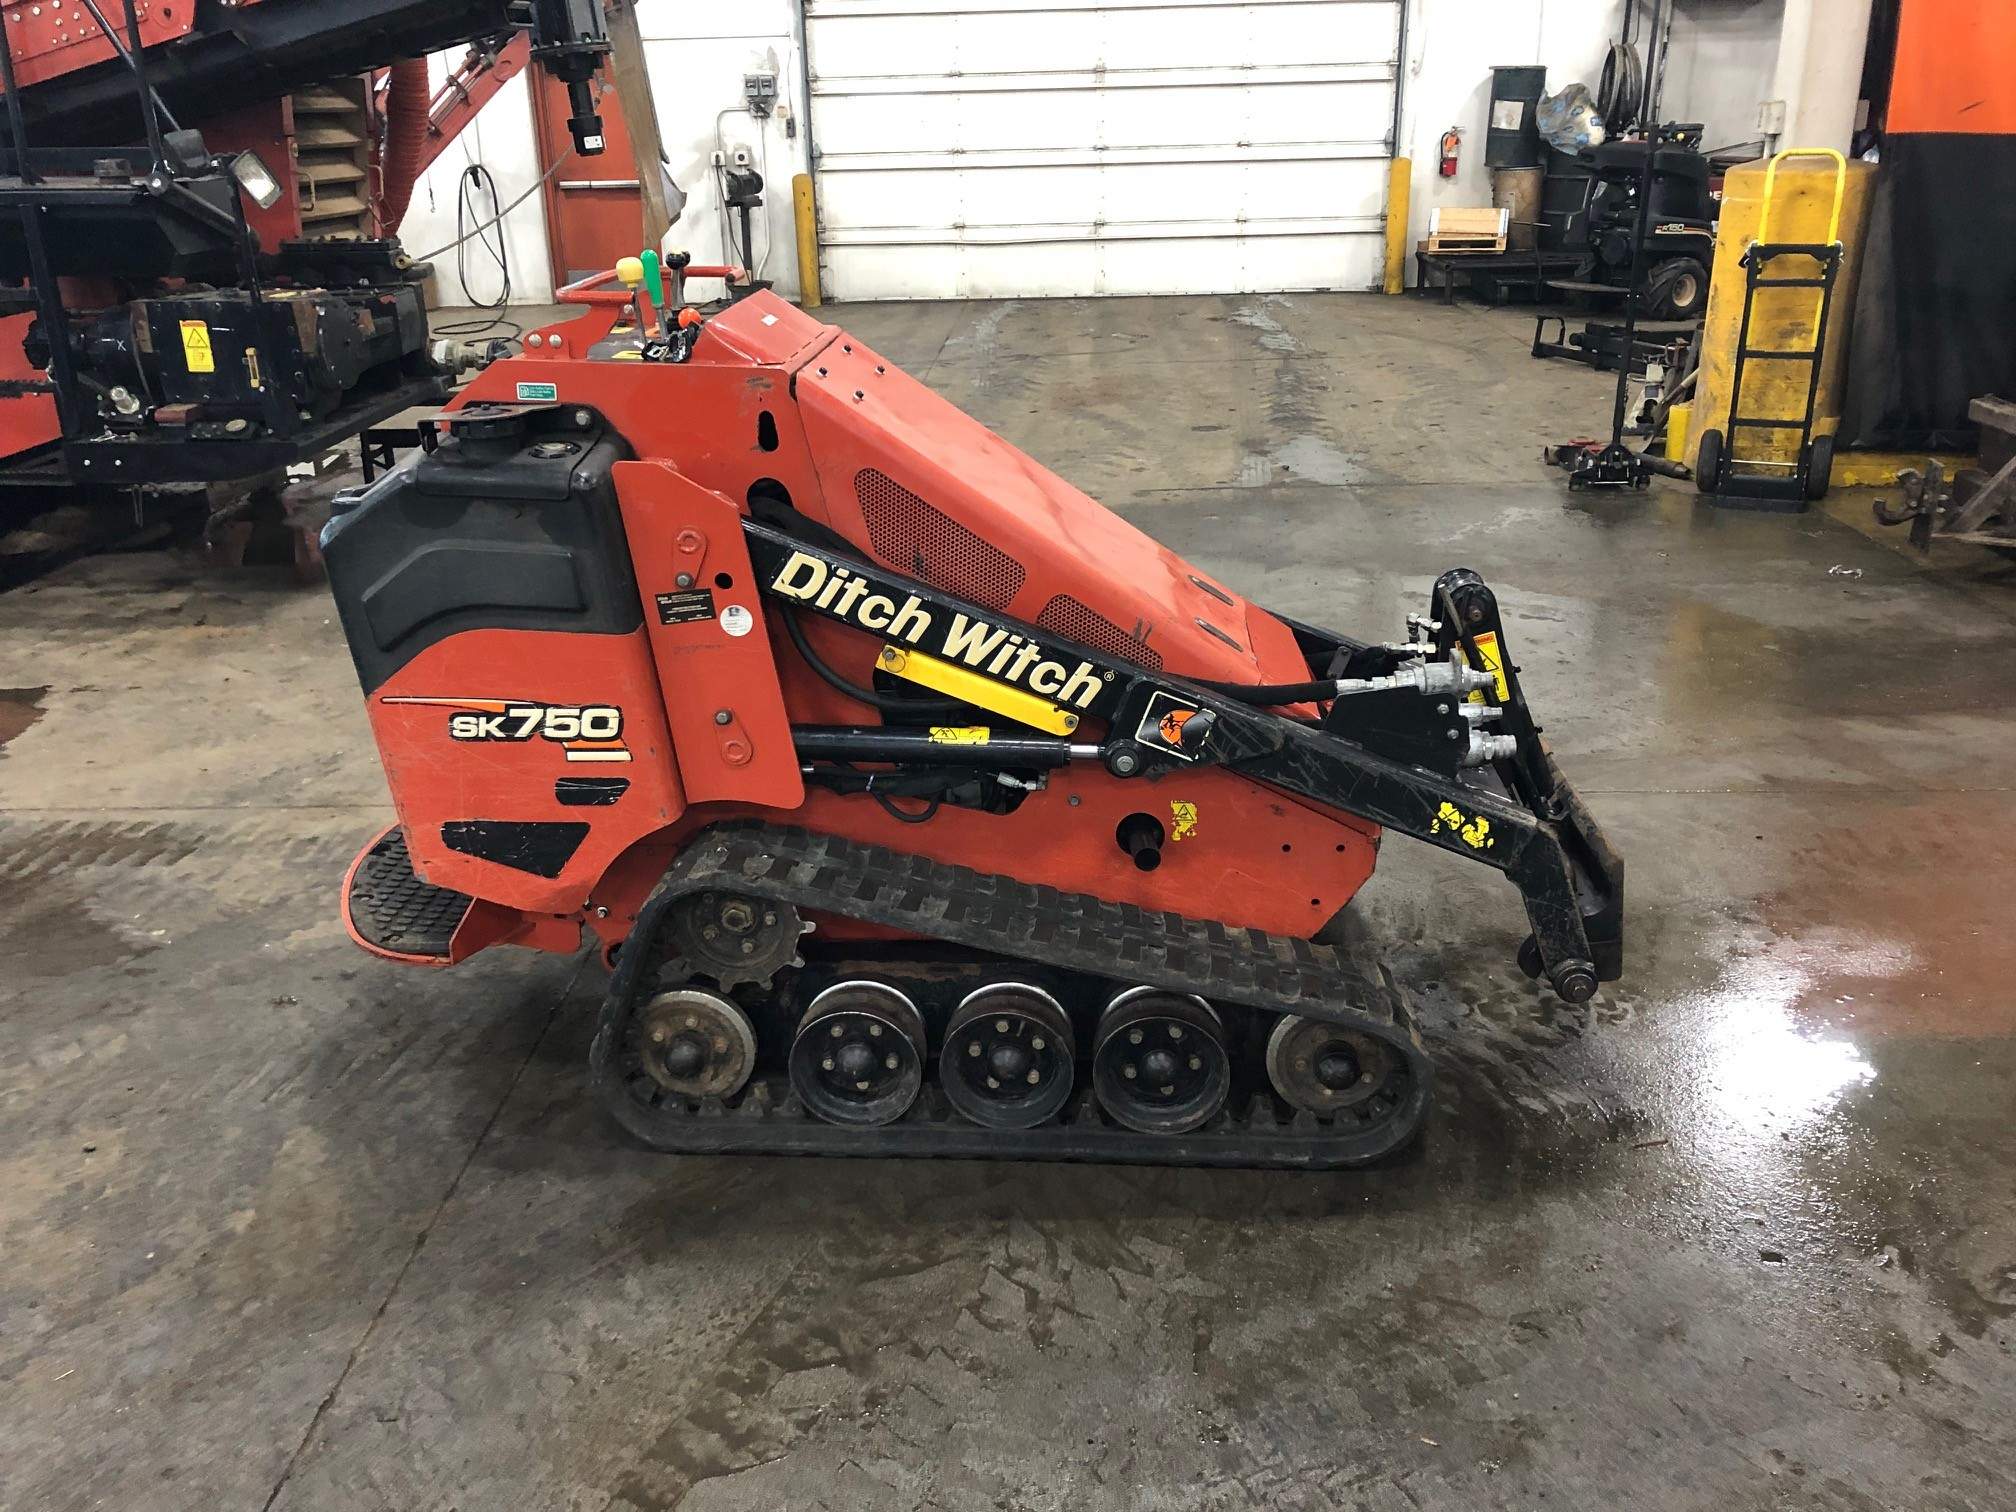 Used, 2015, Ditch Witch, SK750, Skid Steers